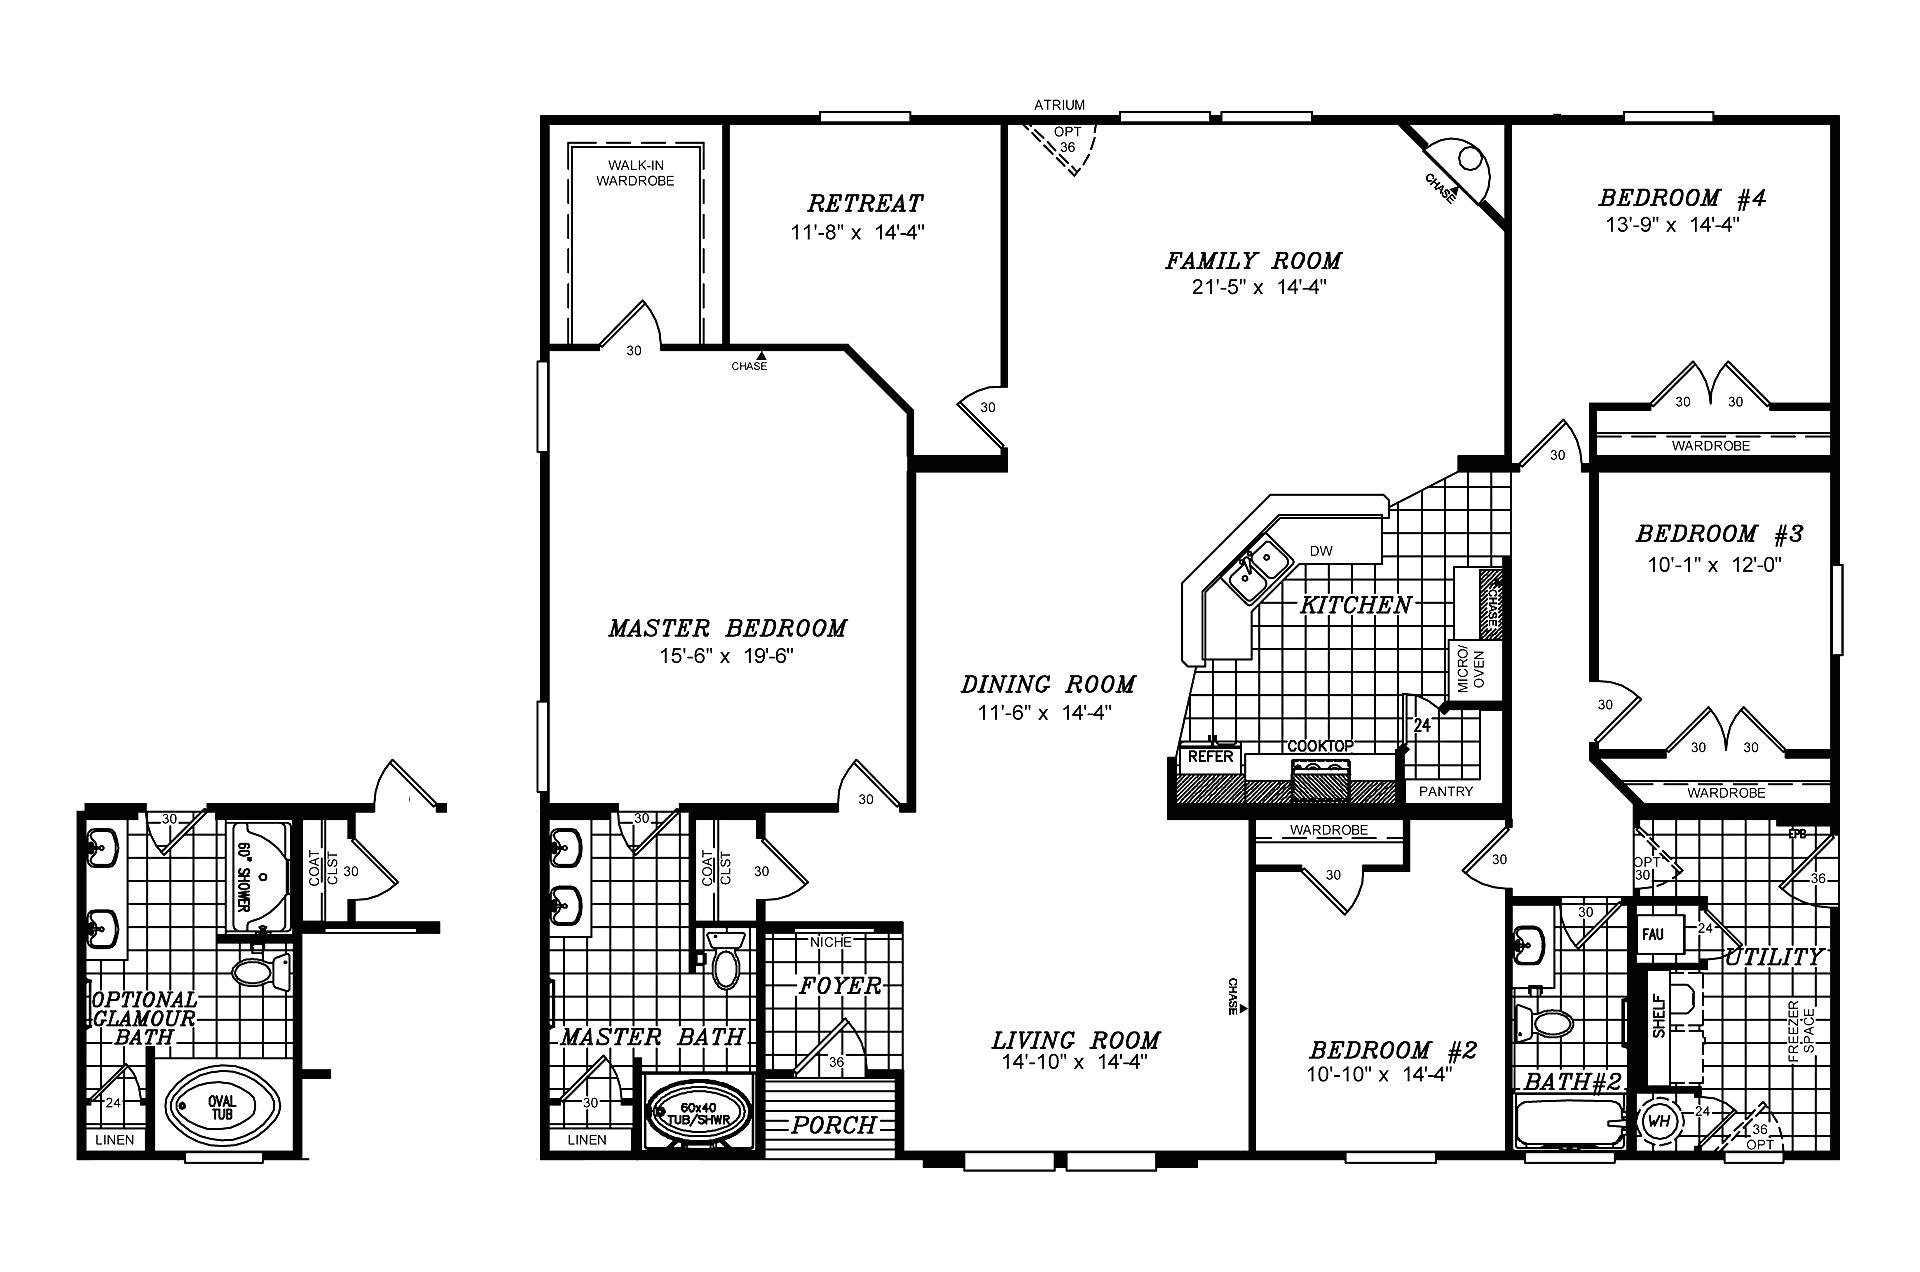 champion manufactured homes floor plans best of modular homes south carolina floor plans unique manufactured homes